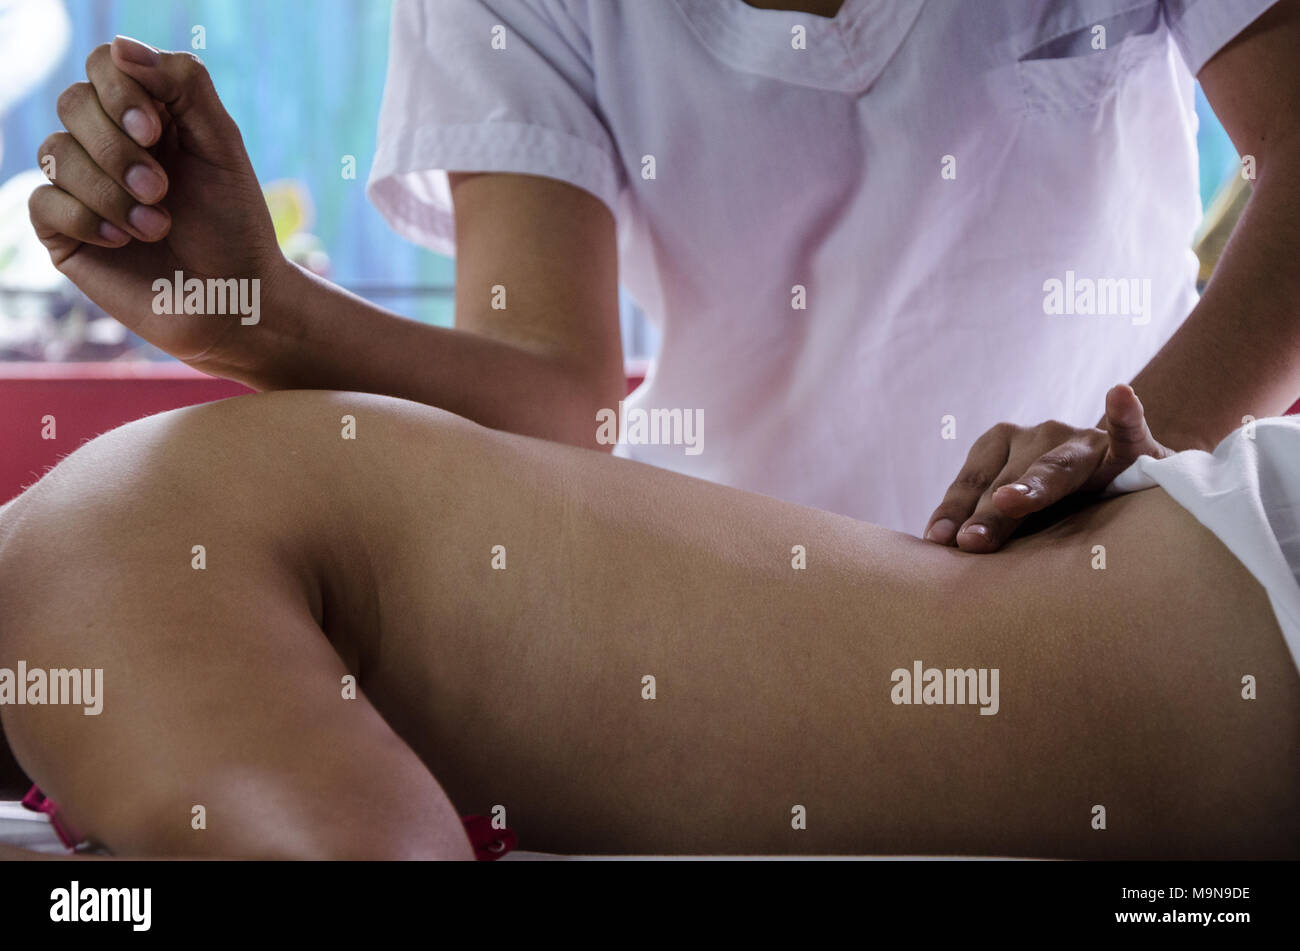 Cosmiatra doing relaxing massages to a patient - Stock Image